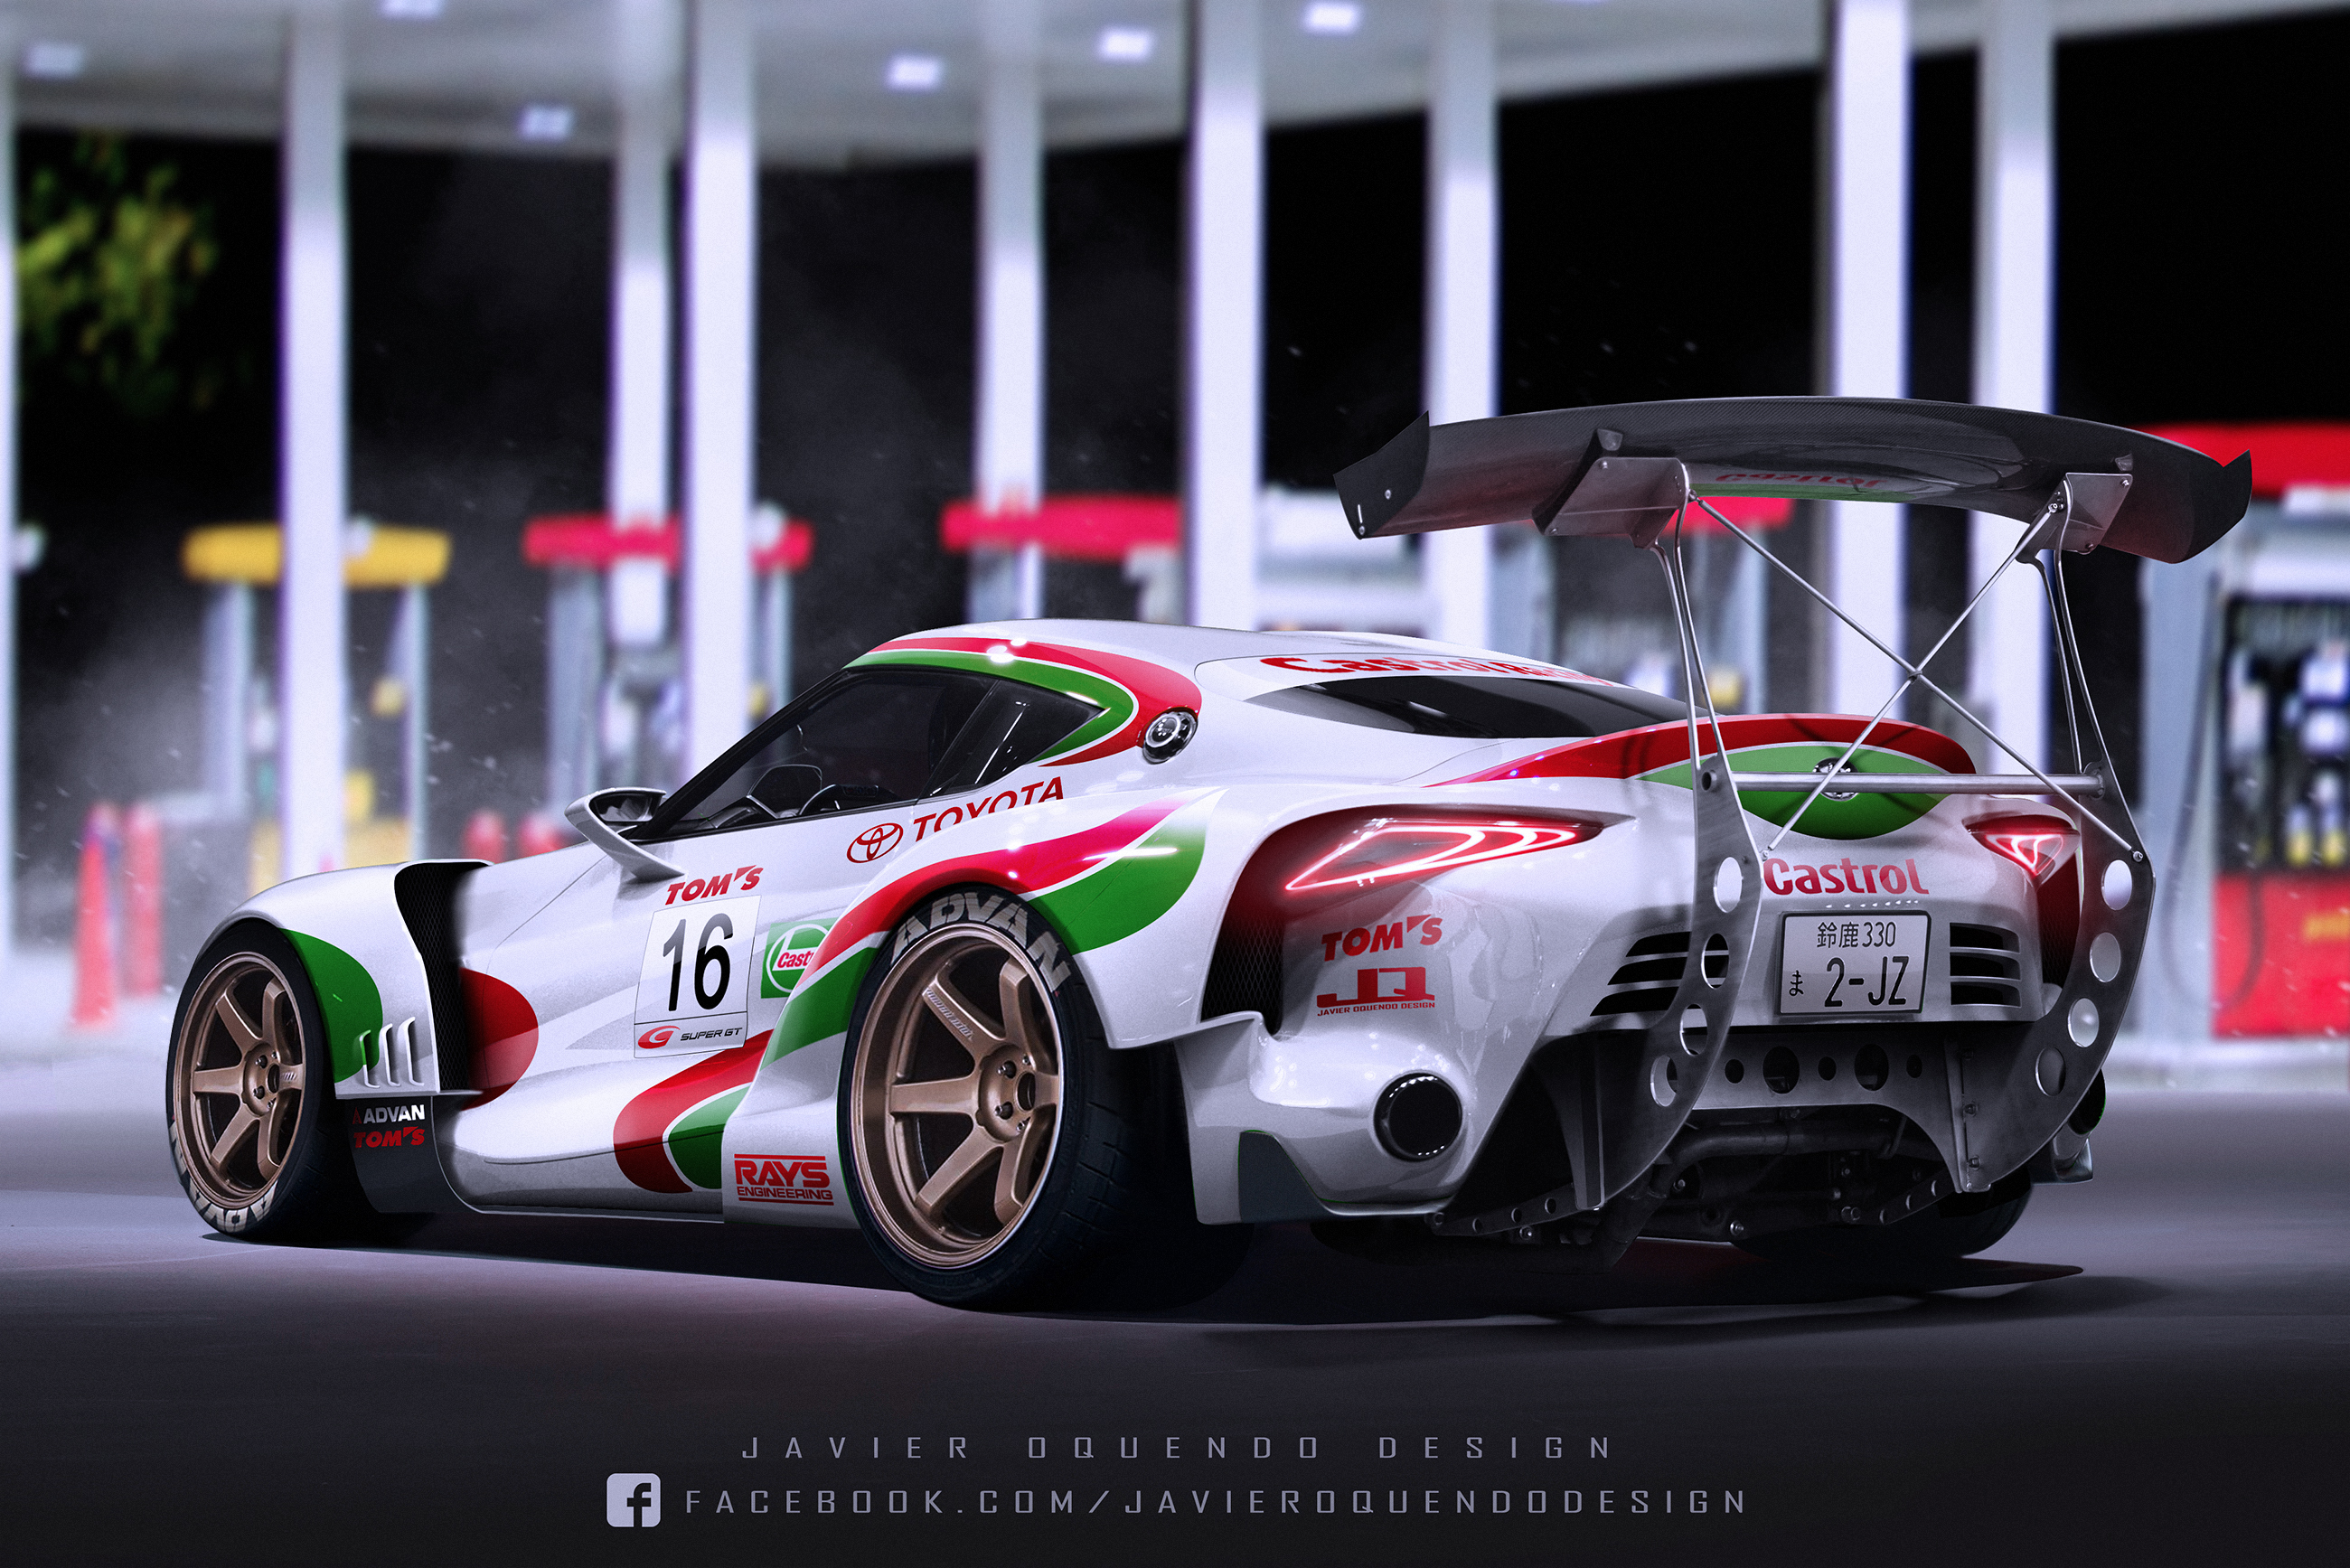 Toyota 86 Livery >> Tom's Castrol Toyota FT-1 Super GT by javieroquendodesign on DeviantArt